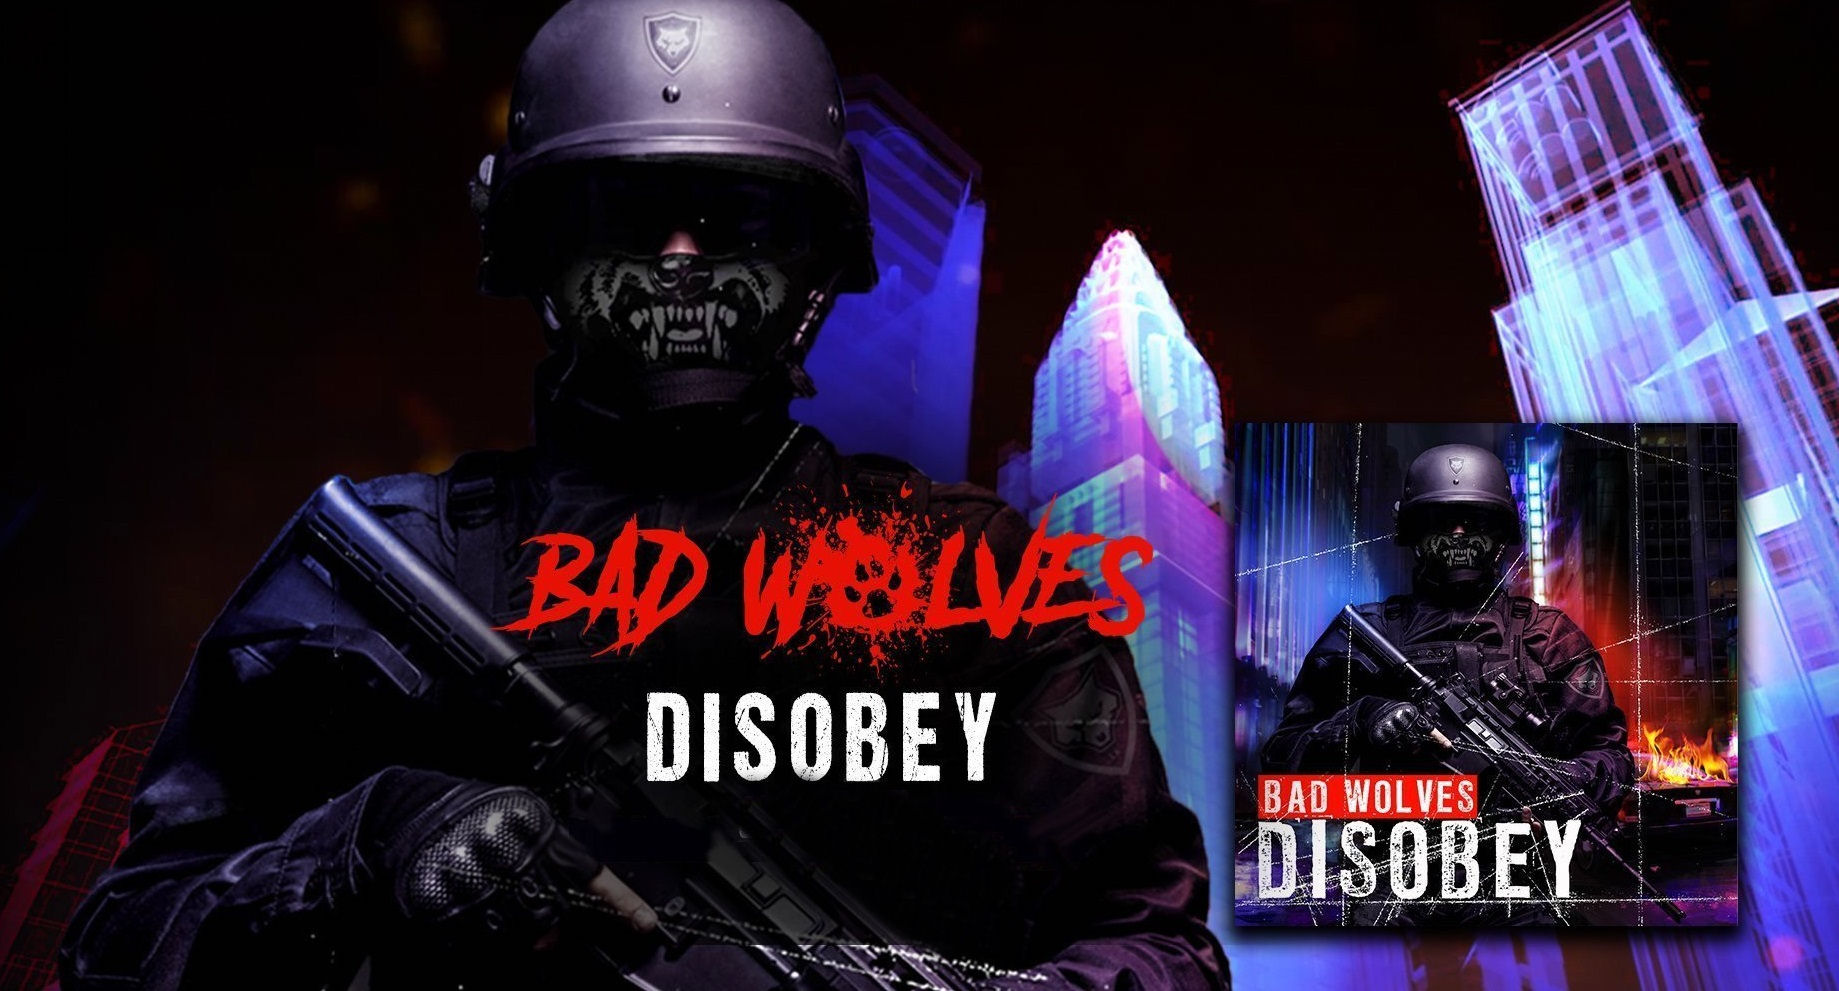 Bad Wolves Disobey review, Bad Wolves, Bad Wolves band, Bad Wolves metalcore band, Bad Wolves Disobey, Bad Wolves debut album, DevilDriver, Bad Wolves False Flags Volume I, Bad Wolves False Flags Volume II, Listen to Bad Wolves Disobey, Stream Bad Wolves Disobey, Bad Wolves Disobey review, Bad Wolves Disobey recensione, Bad Wolves False Flags Volume I recensione, Bad Wolves False Flags Volume I review, Zombie, Officer Down, Better Than The Devil, Shape Shifter, Bad Wolves Disobey, Officer Down, Learn To Live, No Masters, Zombie, Run For Your Life, Remember When, Better The Devil, Jesus Slaves, Hear Me Now, Truth Or Dare, The Conversation, Shape Shifter, Toast To The Ghost, badwolvesofficial, KINDA Agency, Eros Pasi, metalcore, alternative metal, Tommy Vext, Doc Coyle, Chris Cain, Kyle Konkiel, John Boecklin, altermative metal, metalcore albums 2018, metalcore bands, metalcore albums, Top metalcore albums 2018, I Swear, Pacifico, Blood And Bones